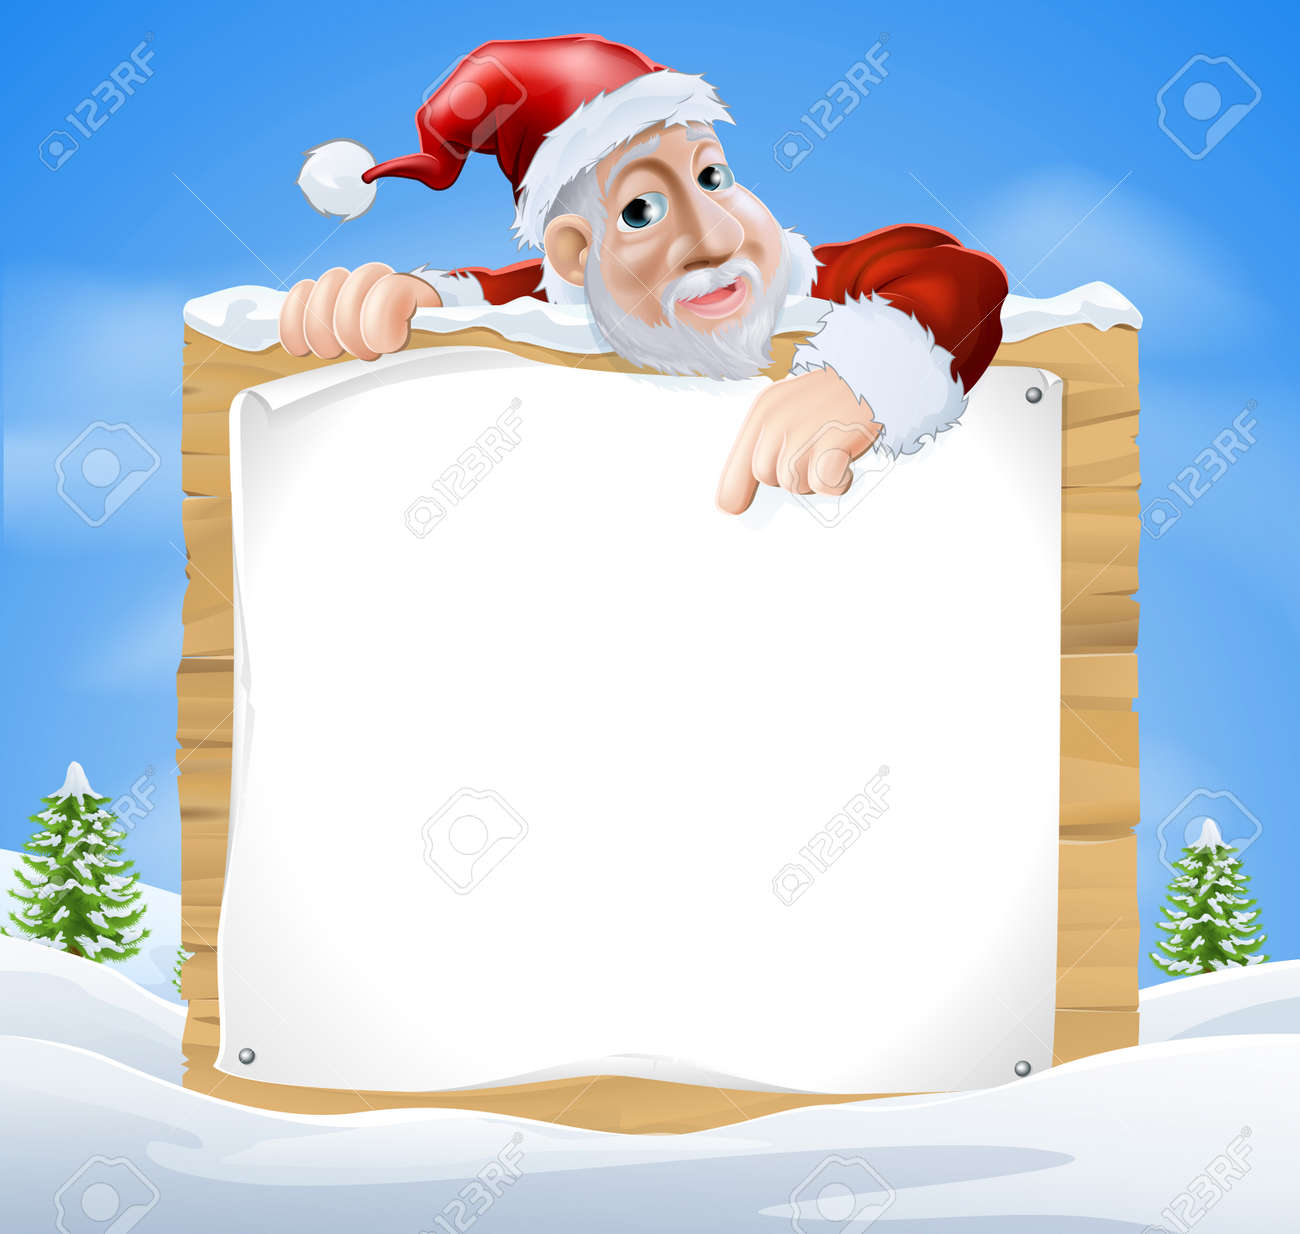 Santa Claus sign winter scene with cartoon Santa pointing down at snow covered sign Stock Vector - 23477923